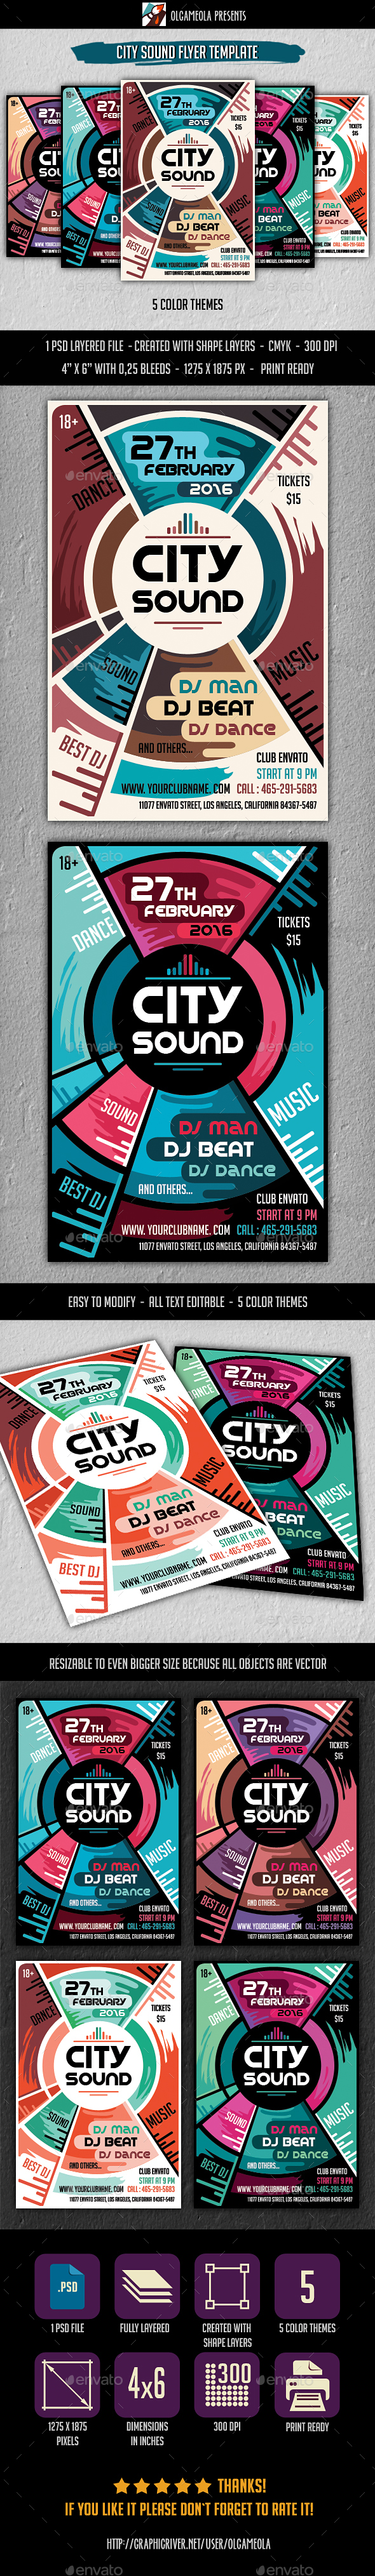 City Sound Flyer Template - Clubs & Parties Events